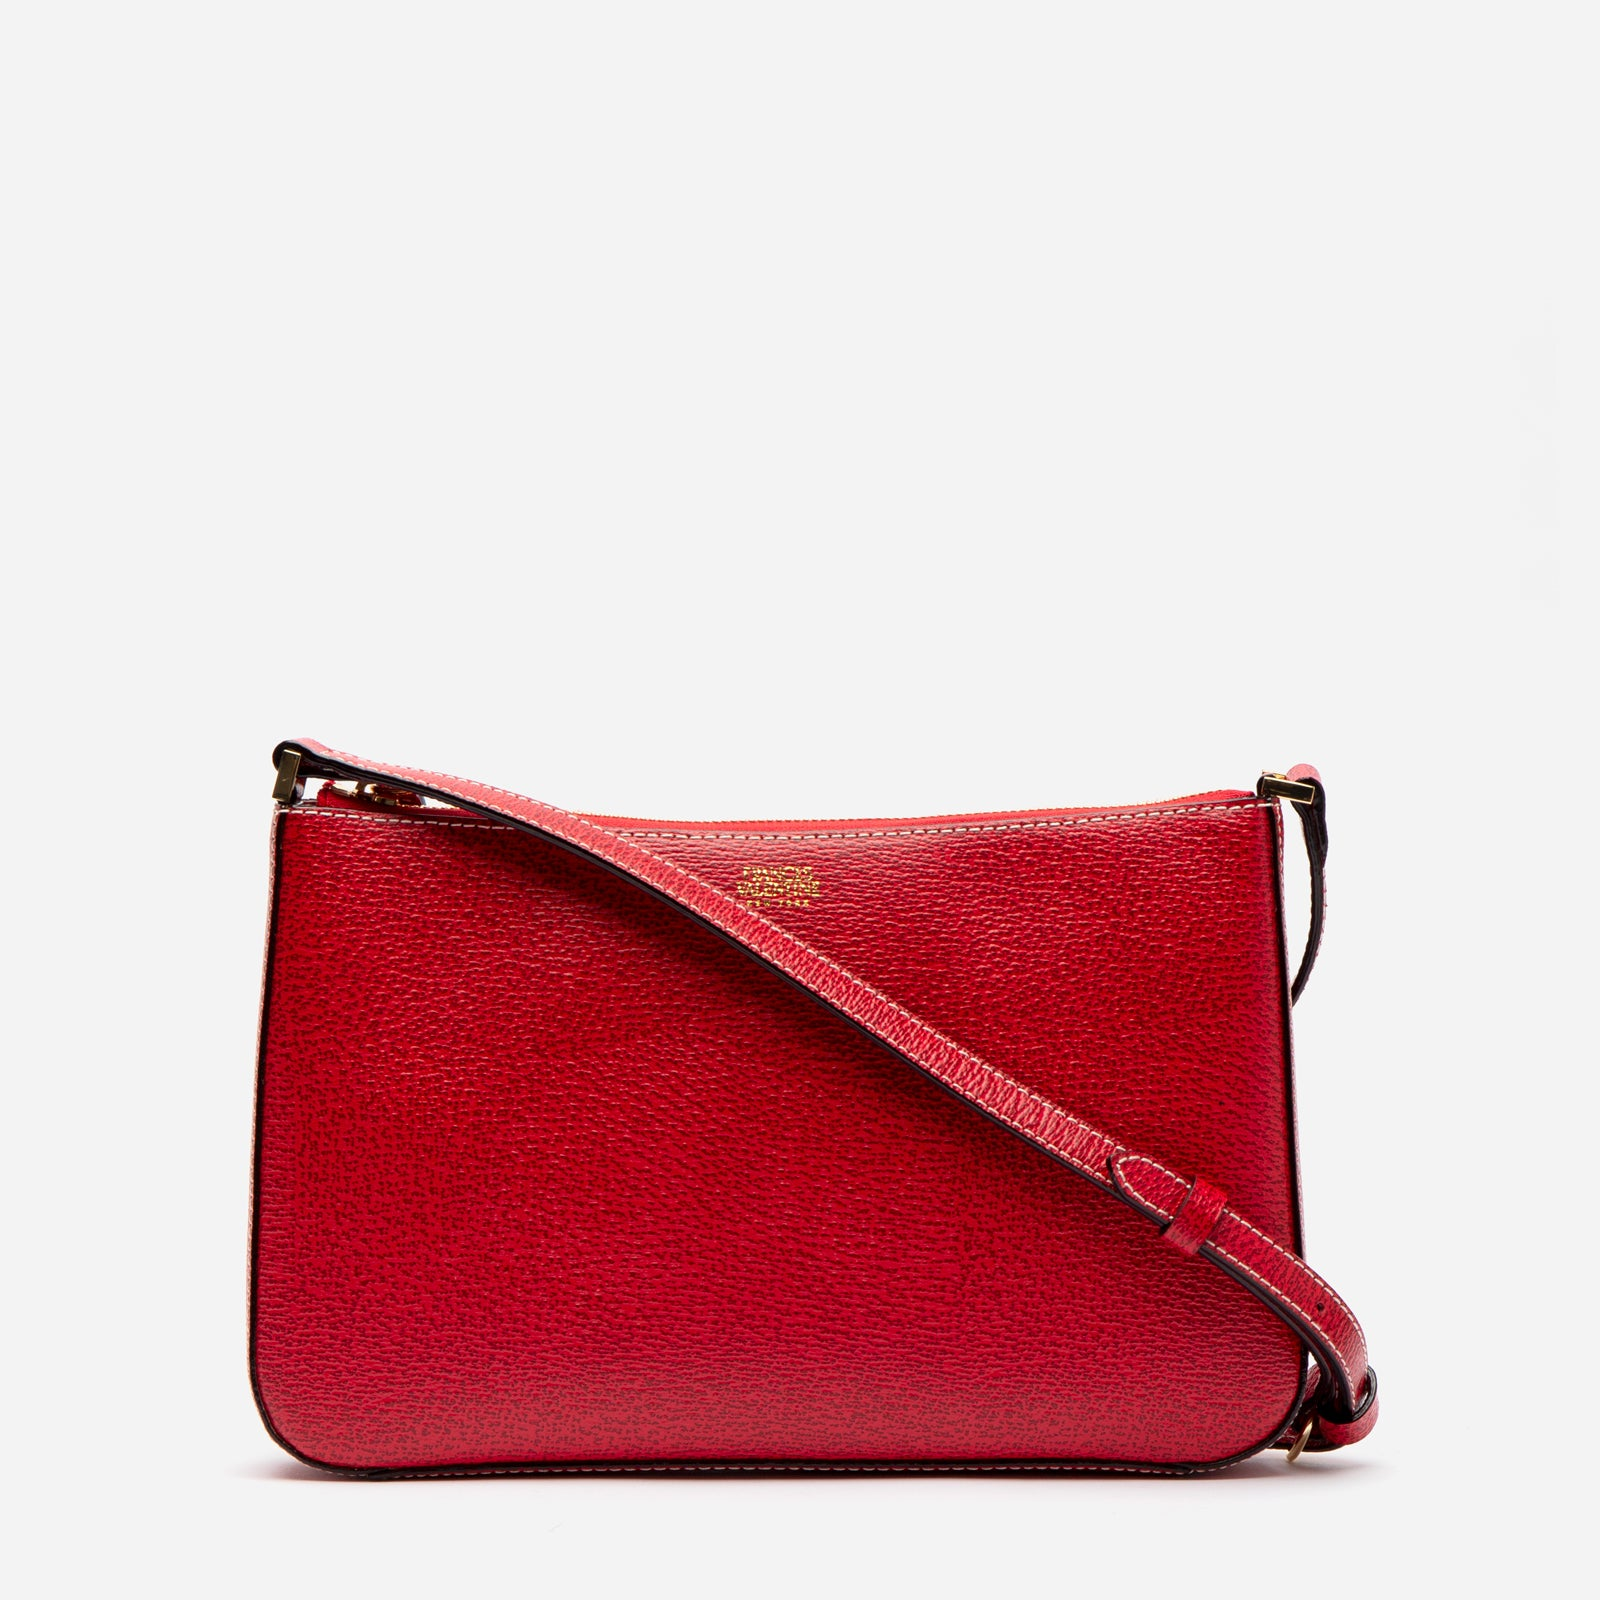 Poppy Crossbody Boarskin Leather Red - Frances Valentine